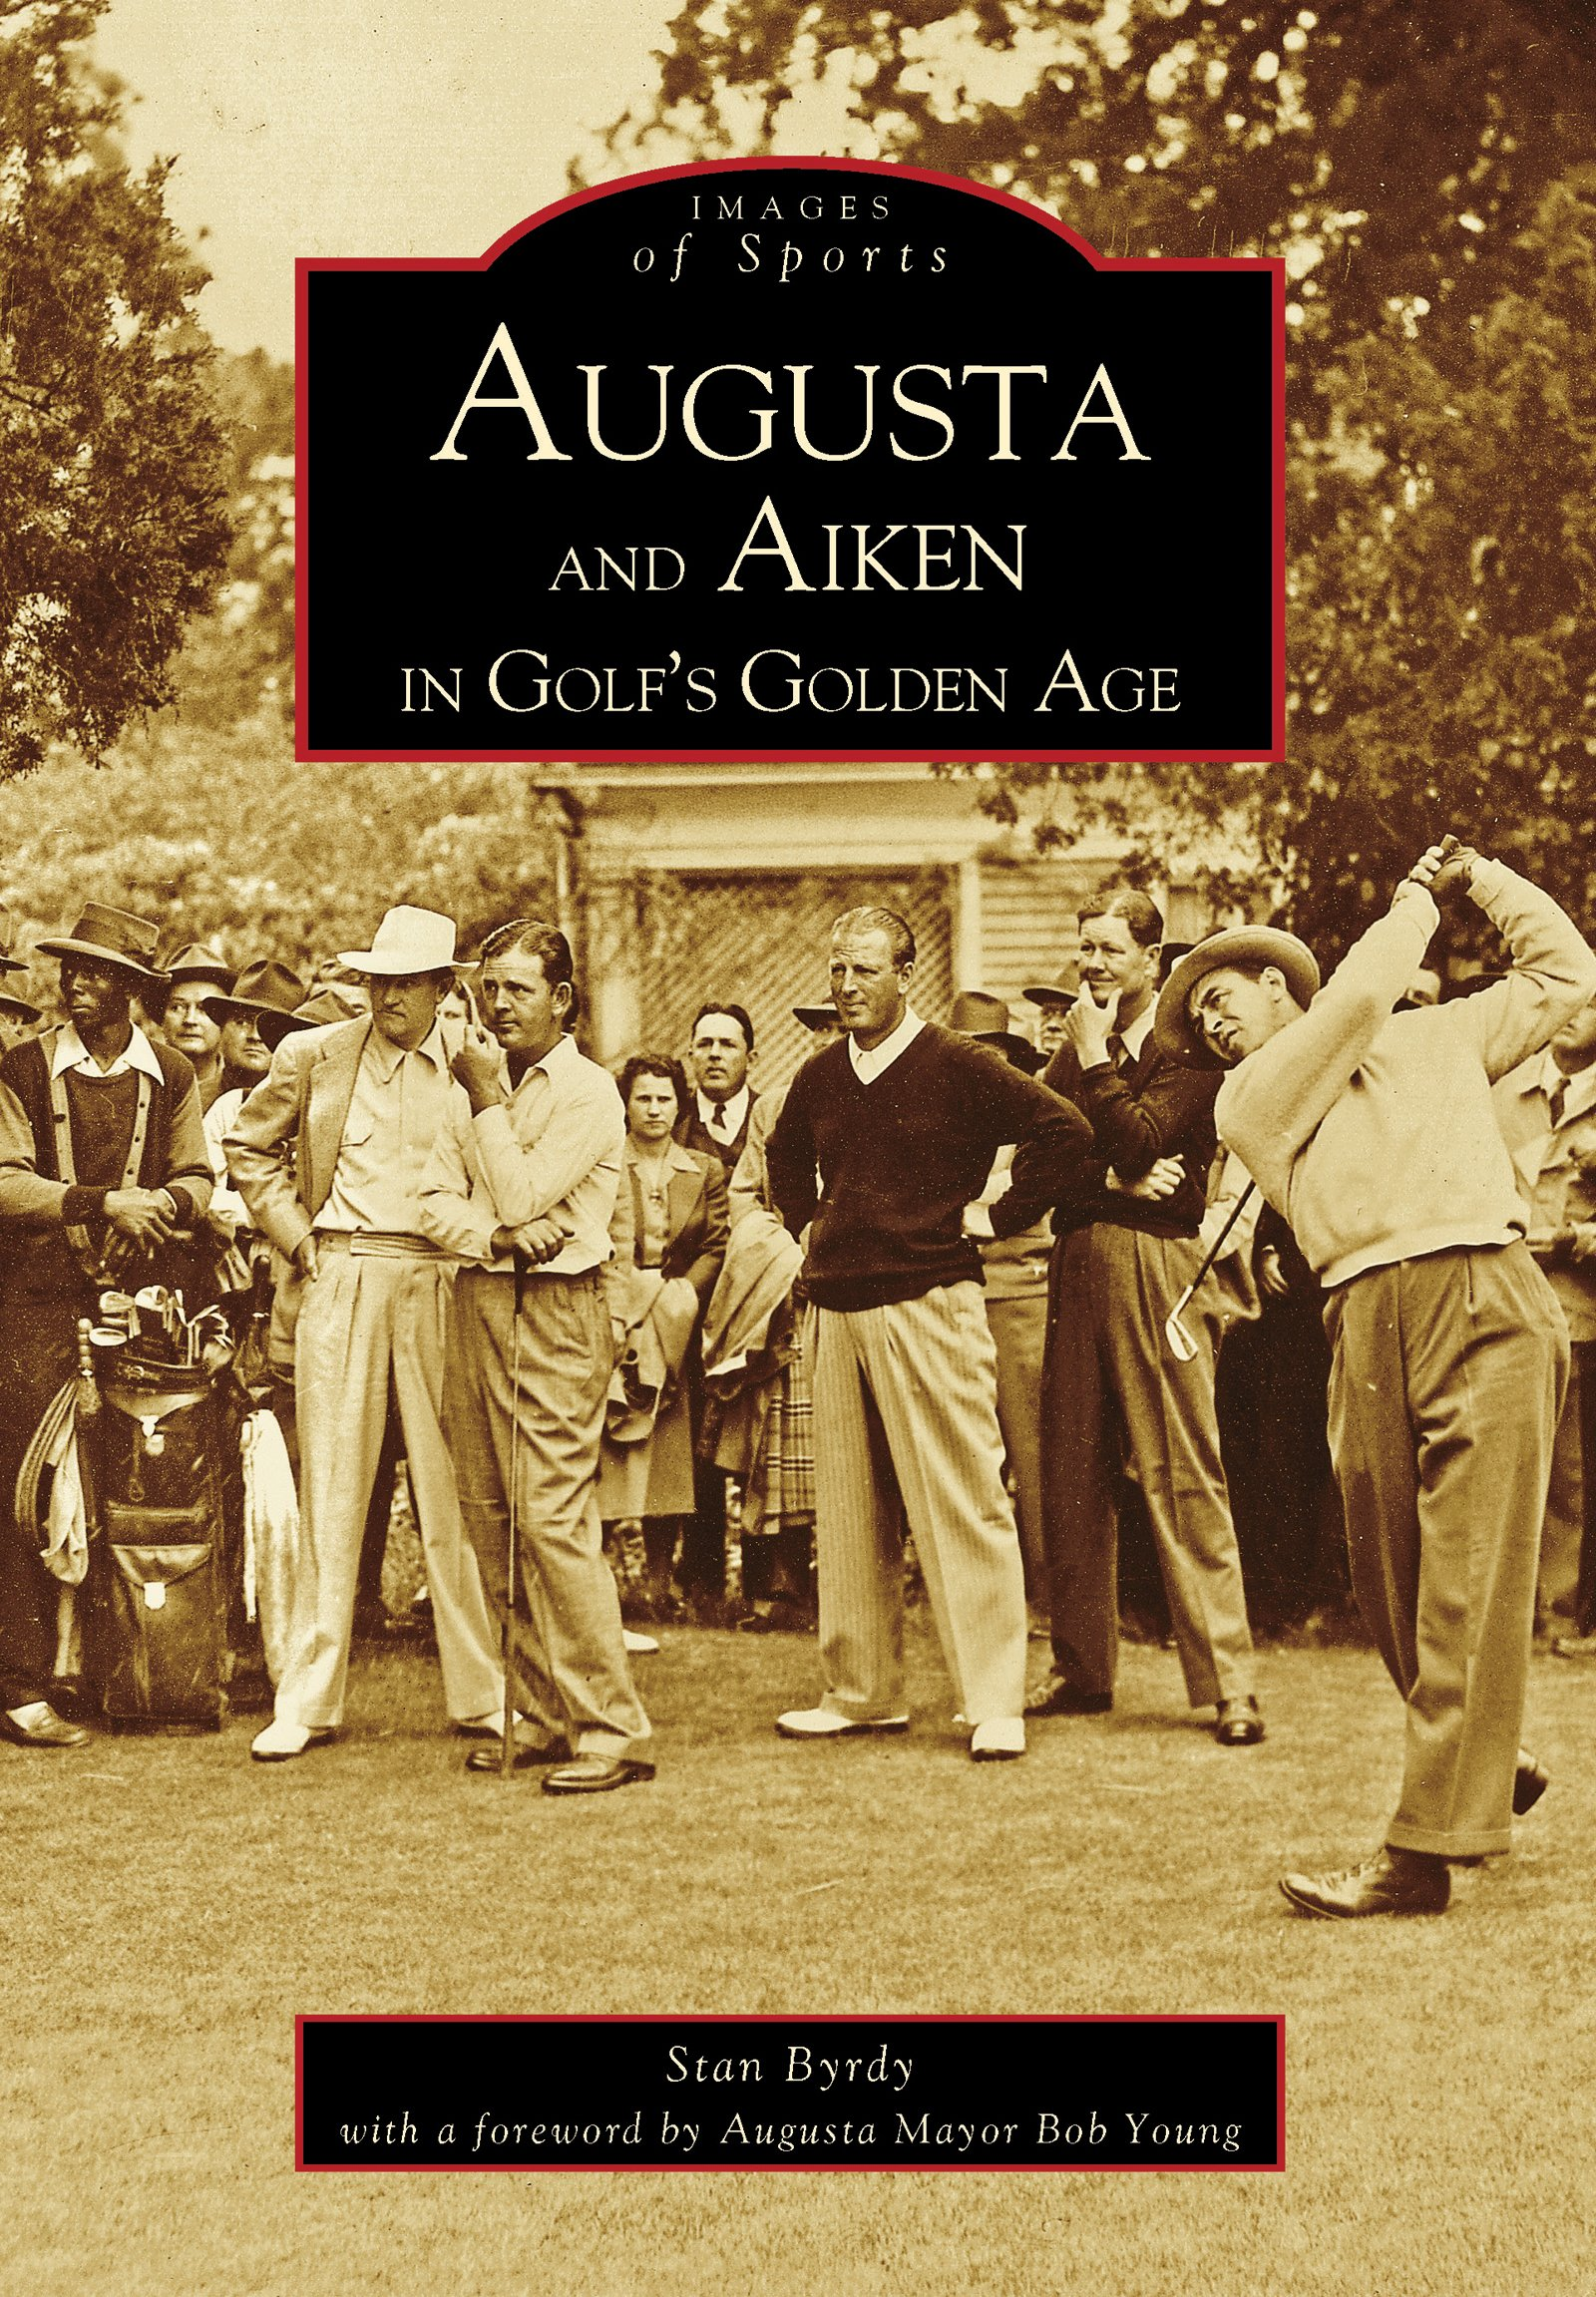 Download Augusta And Aiken In Golf's Golden Age (Images Of Sports) (English Edition) 